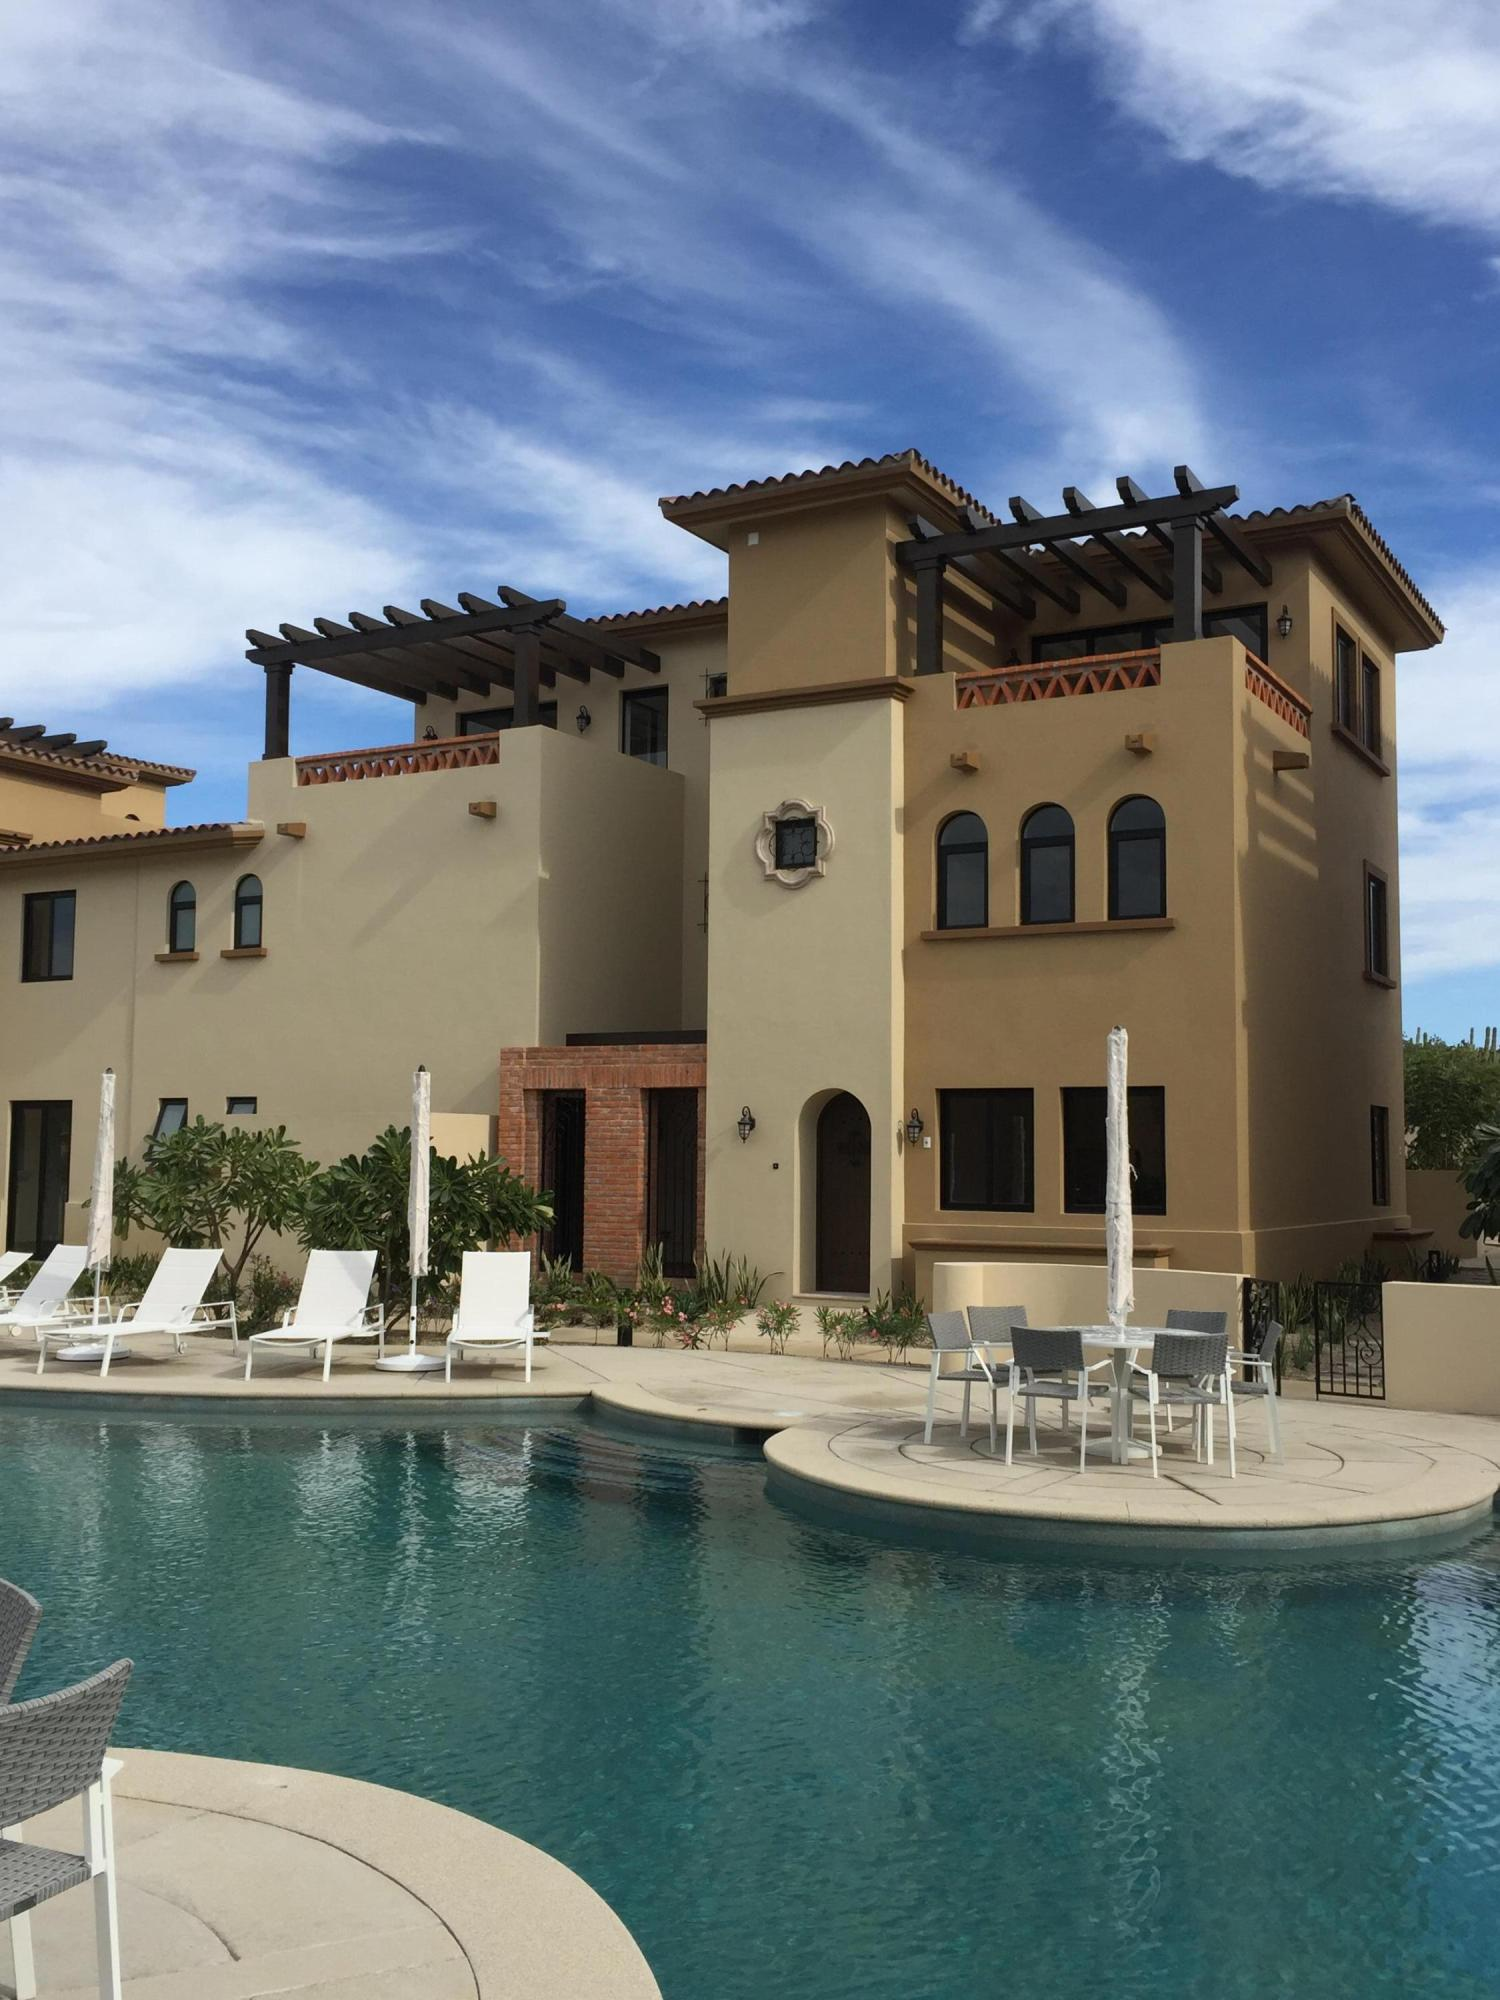 Pacific, 1 Bedroom Bedrooms, ,1 BathroomBathrooms,Condo,For Sale,Quivira Los Cabos Mavila,20-316